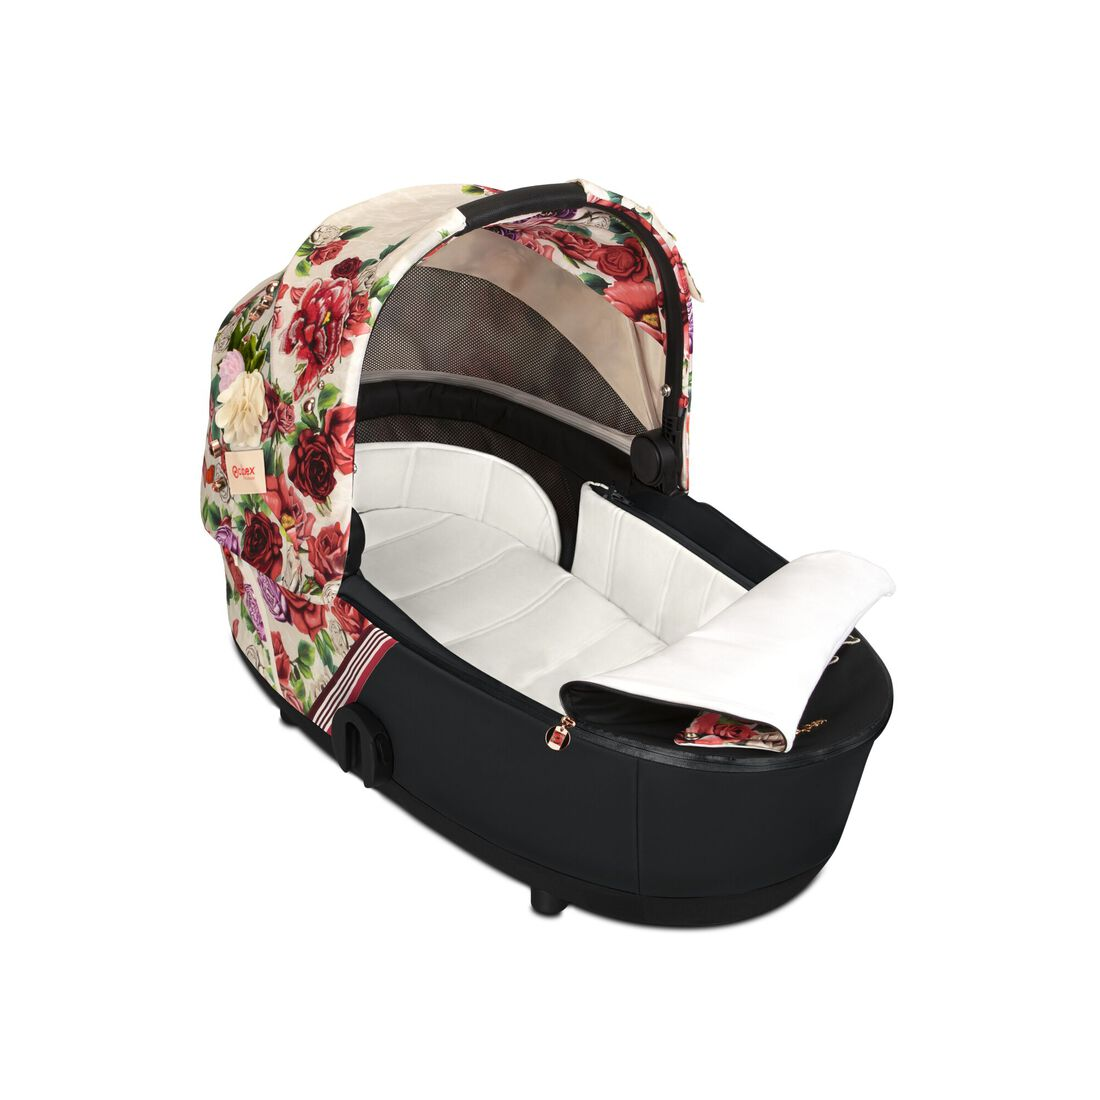 CYBEX Mios Lux Carry Cot - Spring Blossom Light in Spring Blossom Light large image number 2